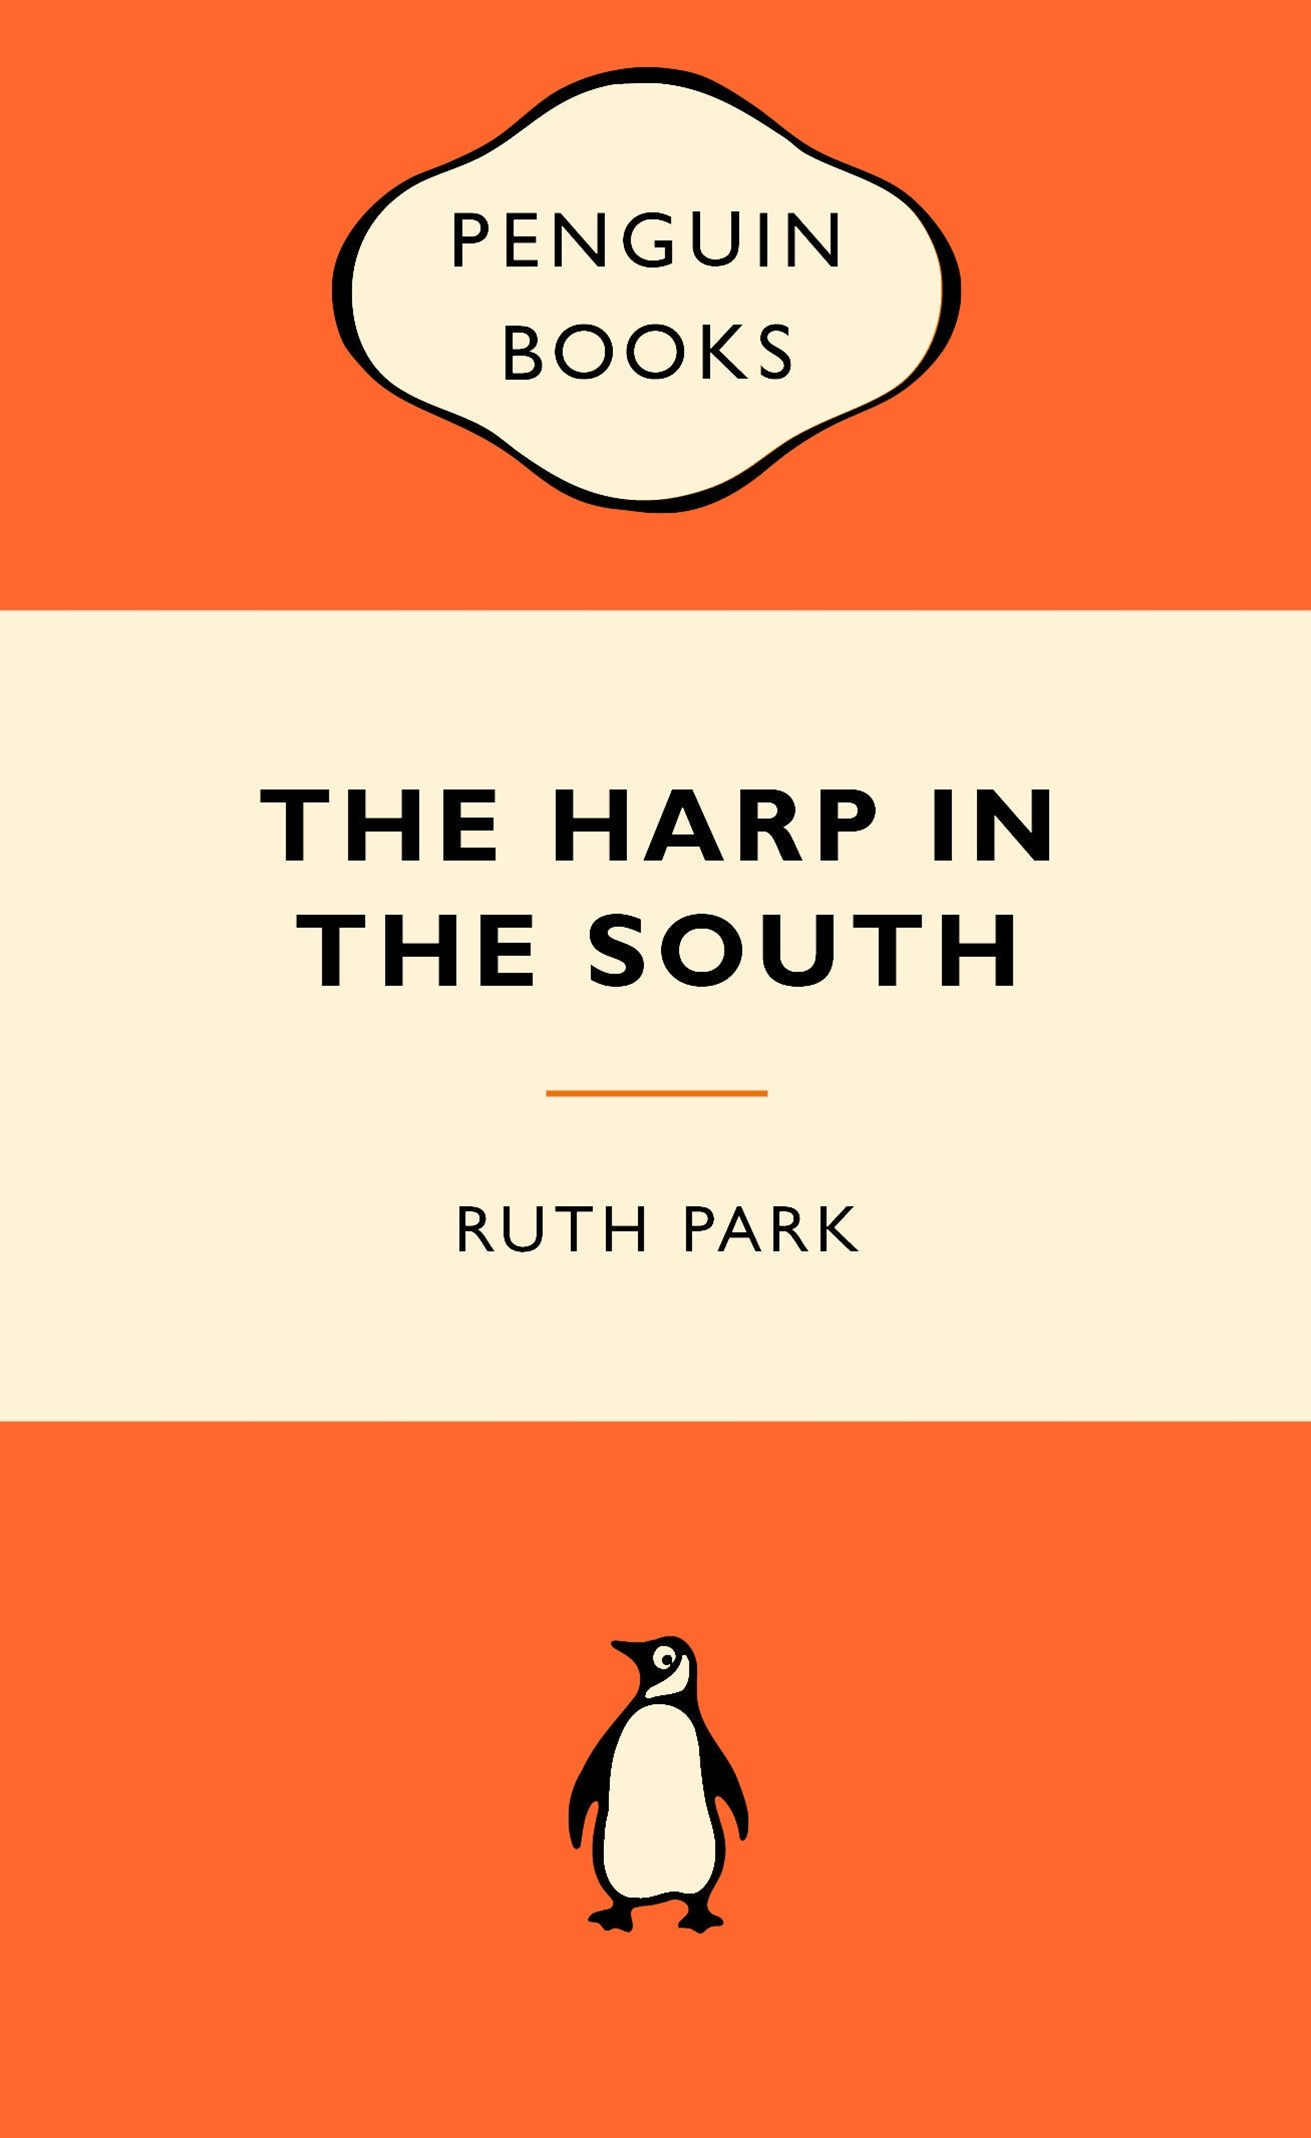 The Harp In The South: Popular Penguins